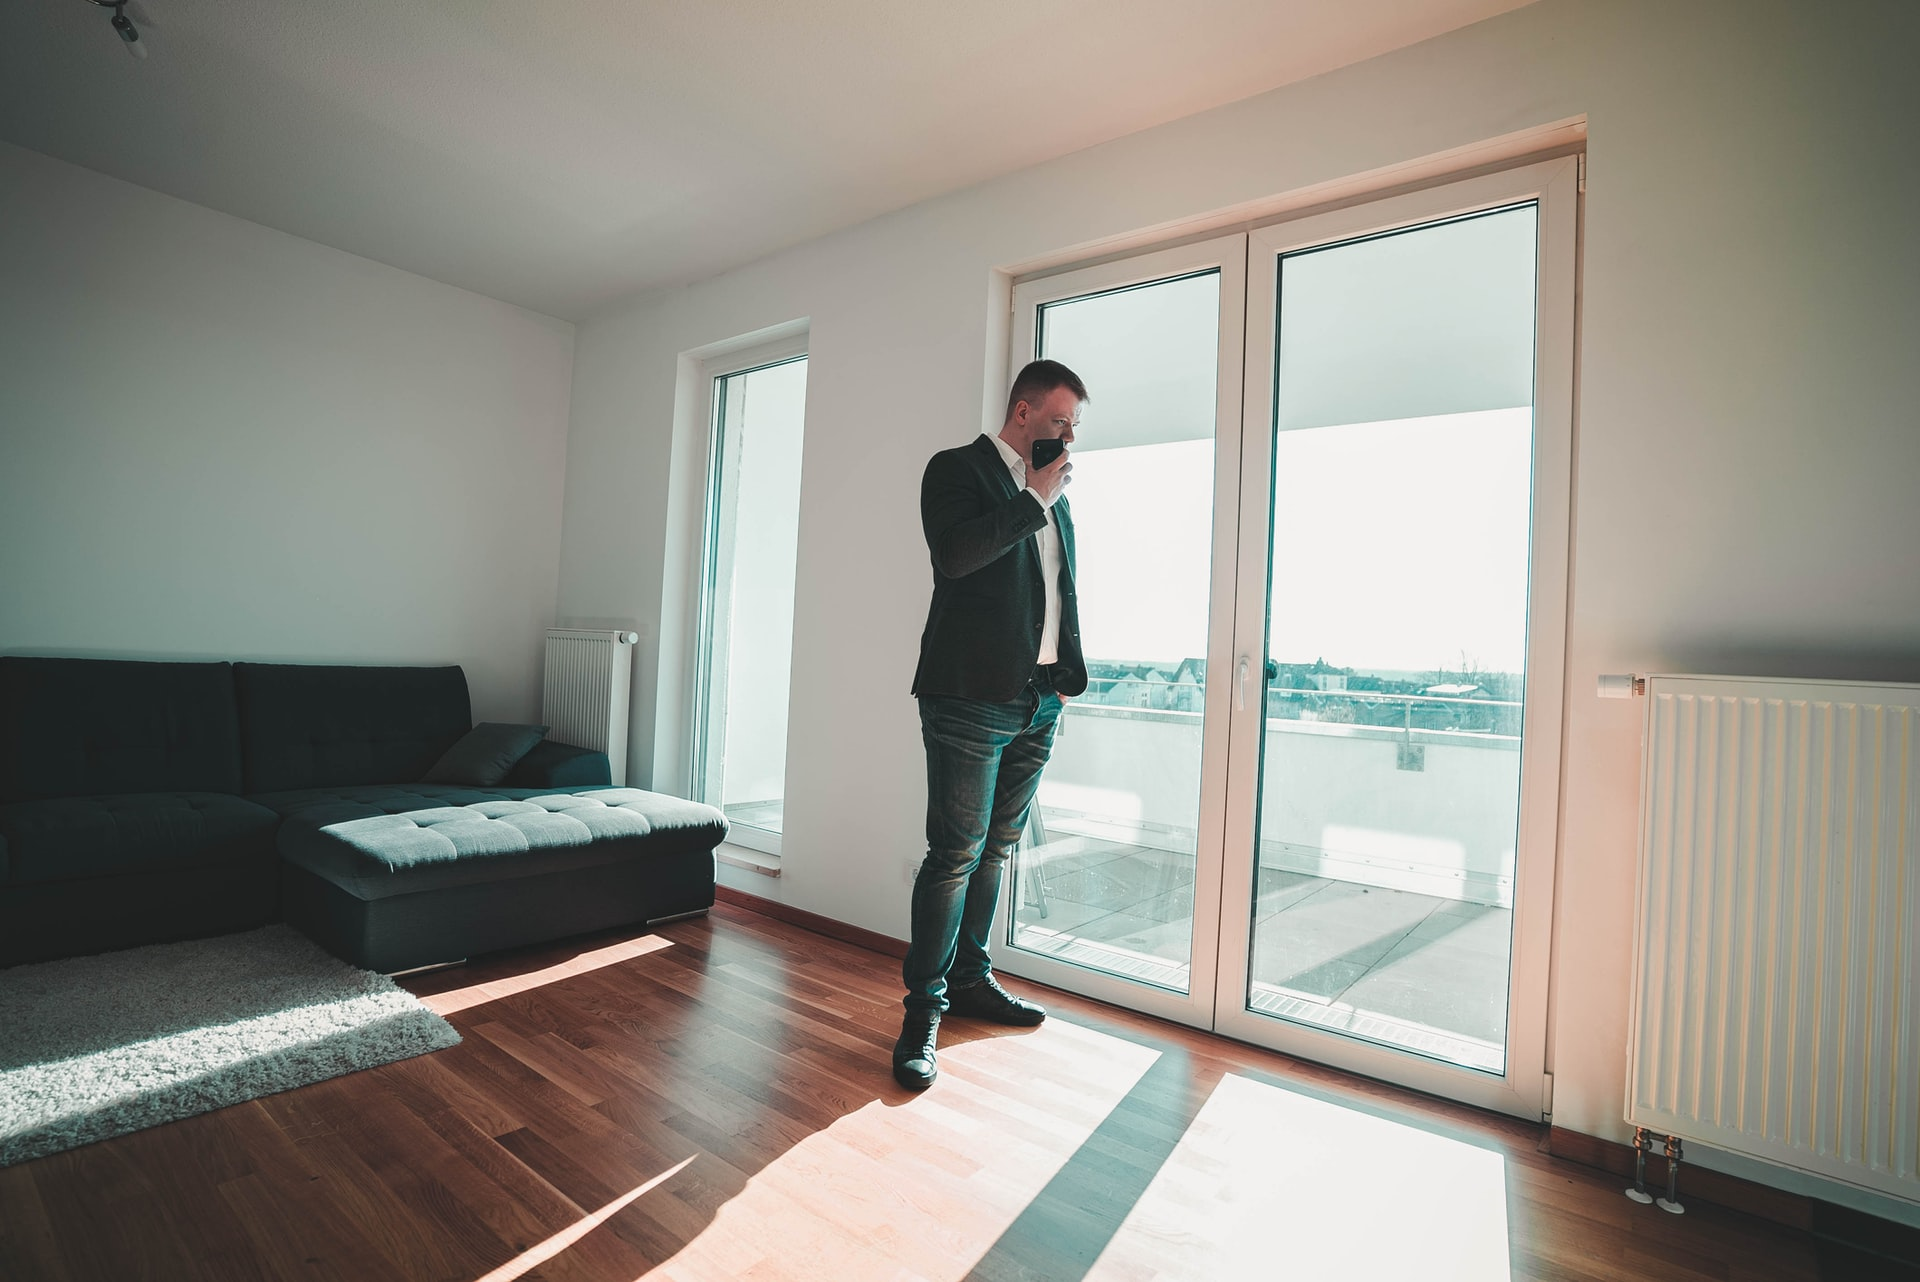 The Top 10 Business Coaches and Mastermind Groups to Help You Grow Your Flooring Business